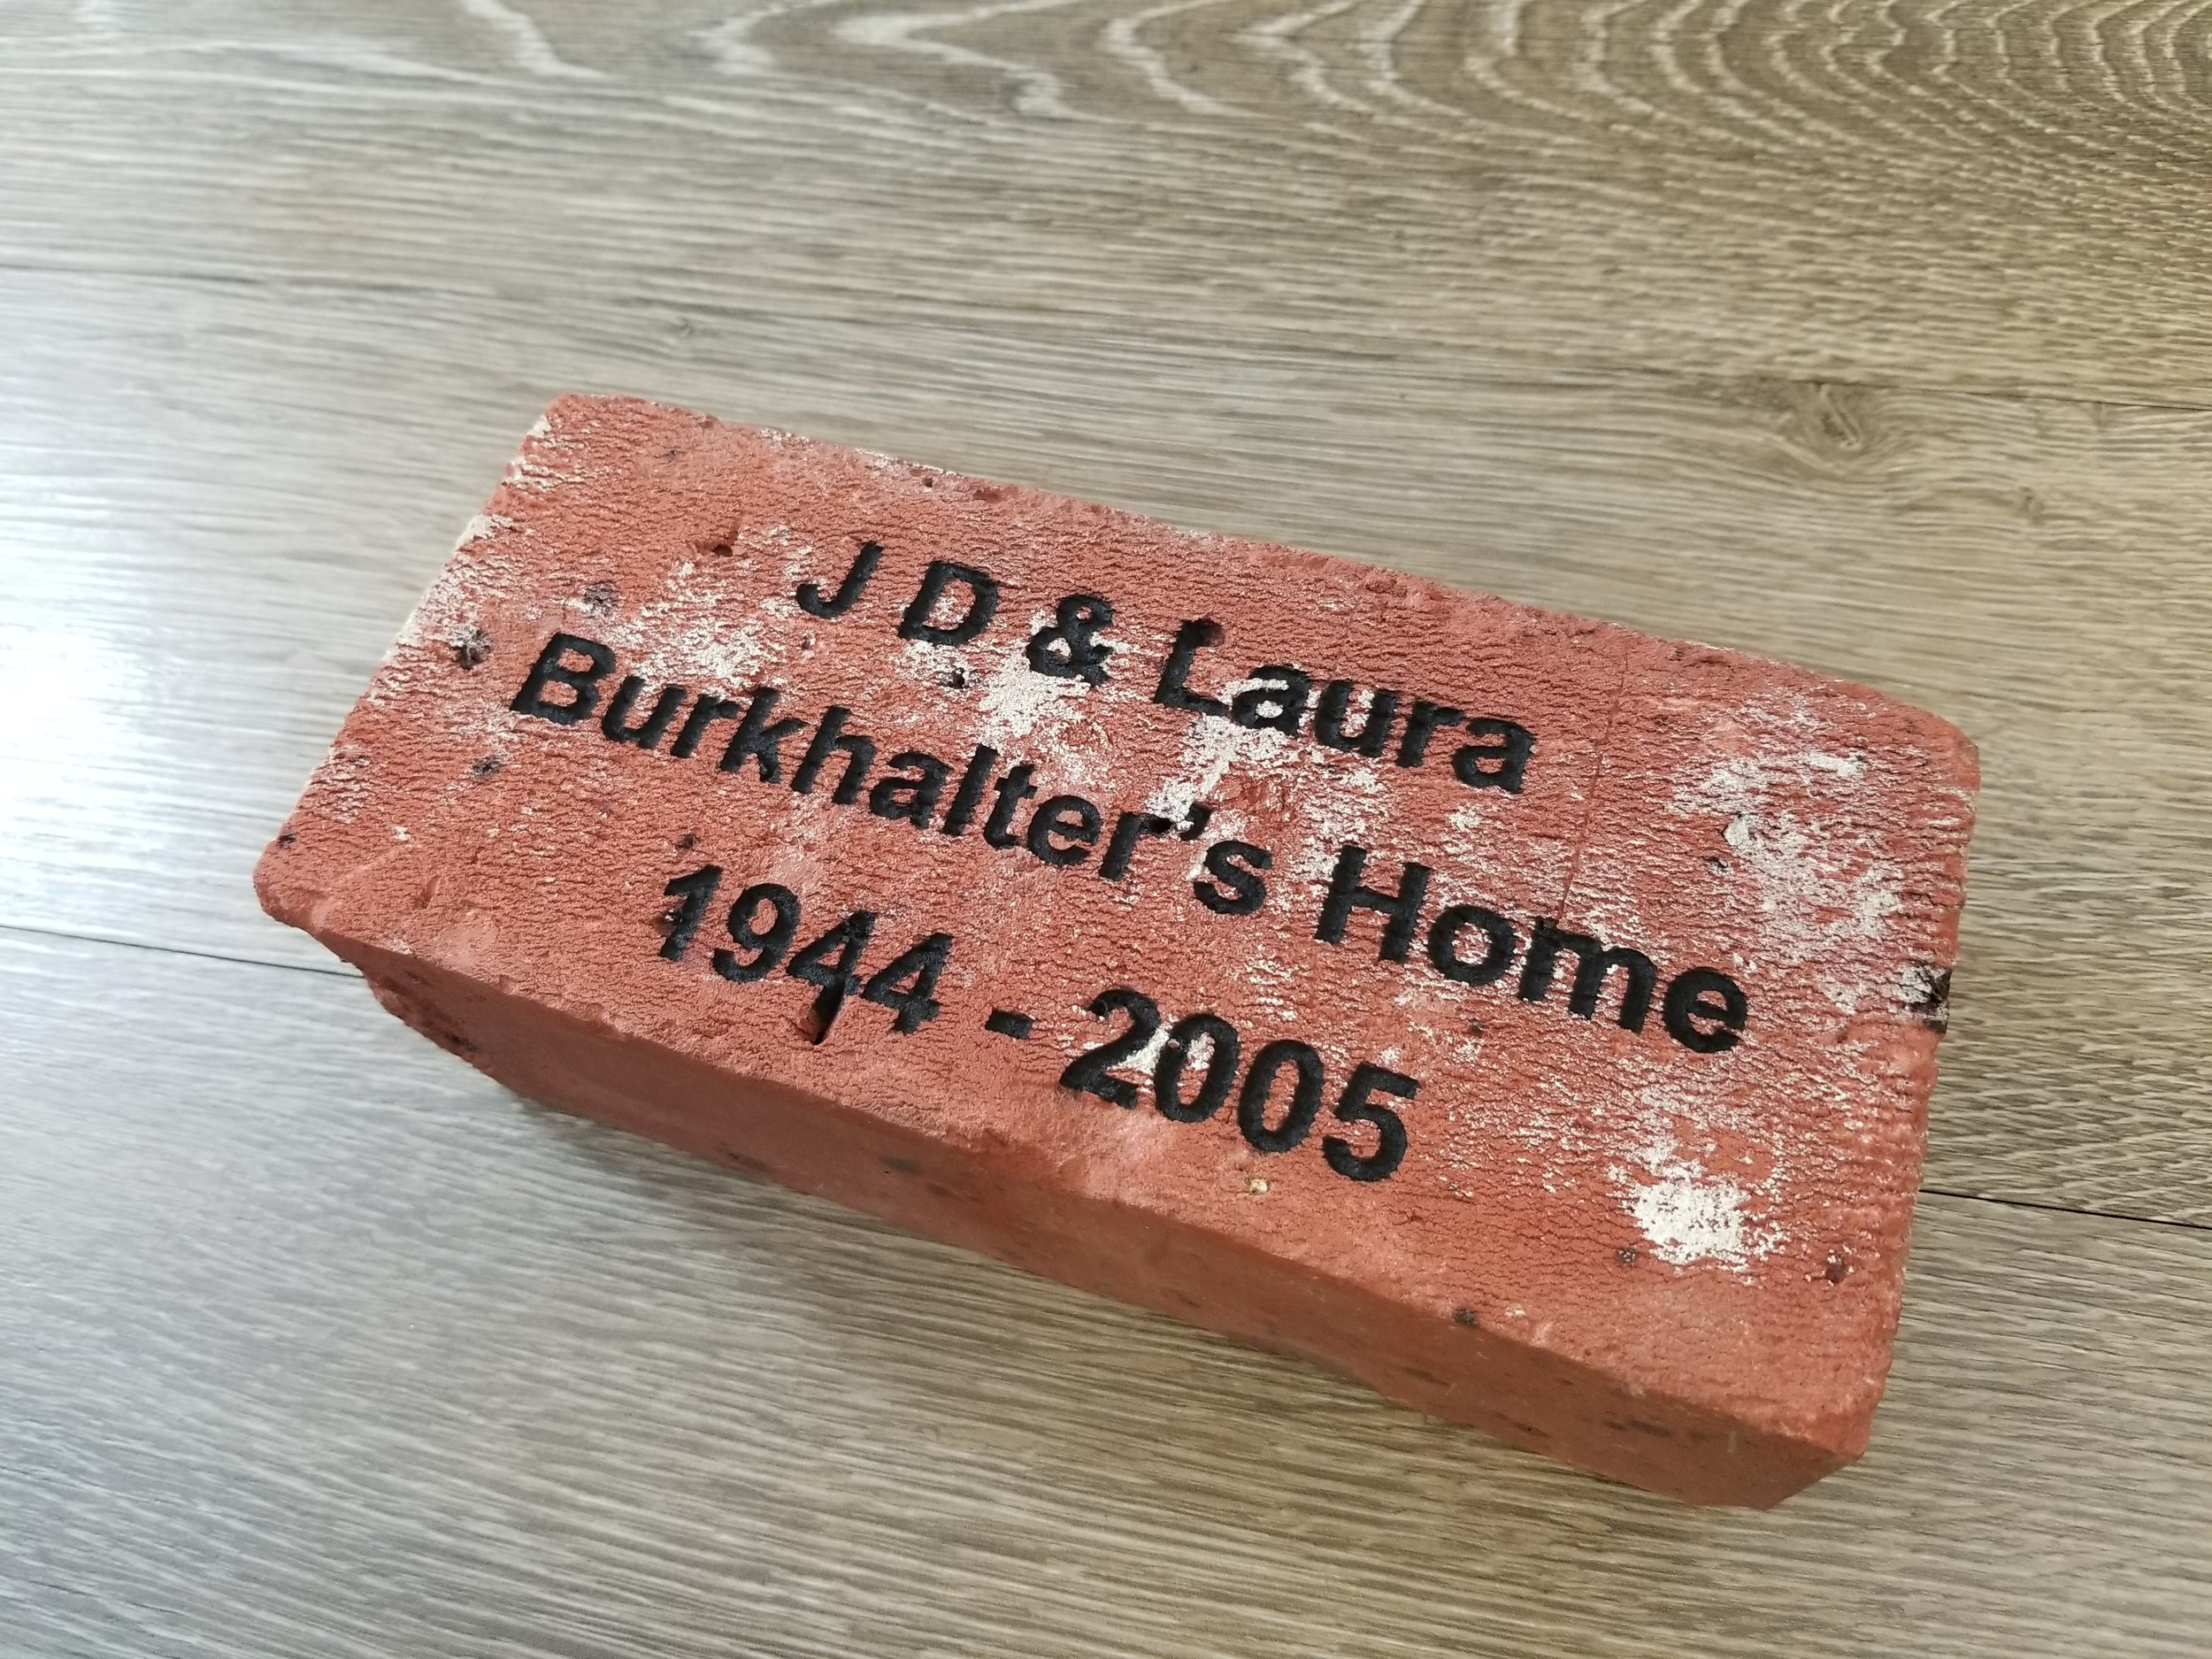 Copy of Engraved Brick - Custom Brick - Personalized Brick - Engraved Memorial Brick - Custom Memorial Brick - Personalized Memorial Brick - Engrave It Houston